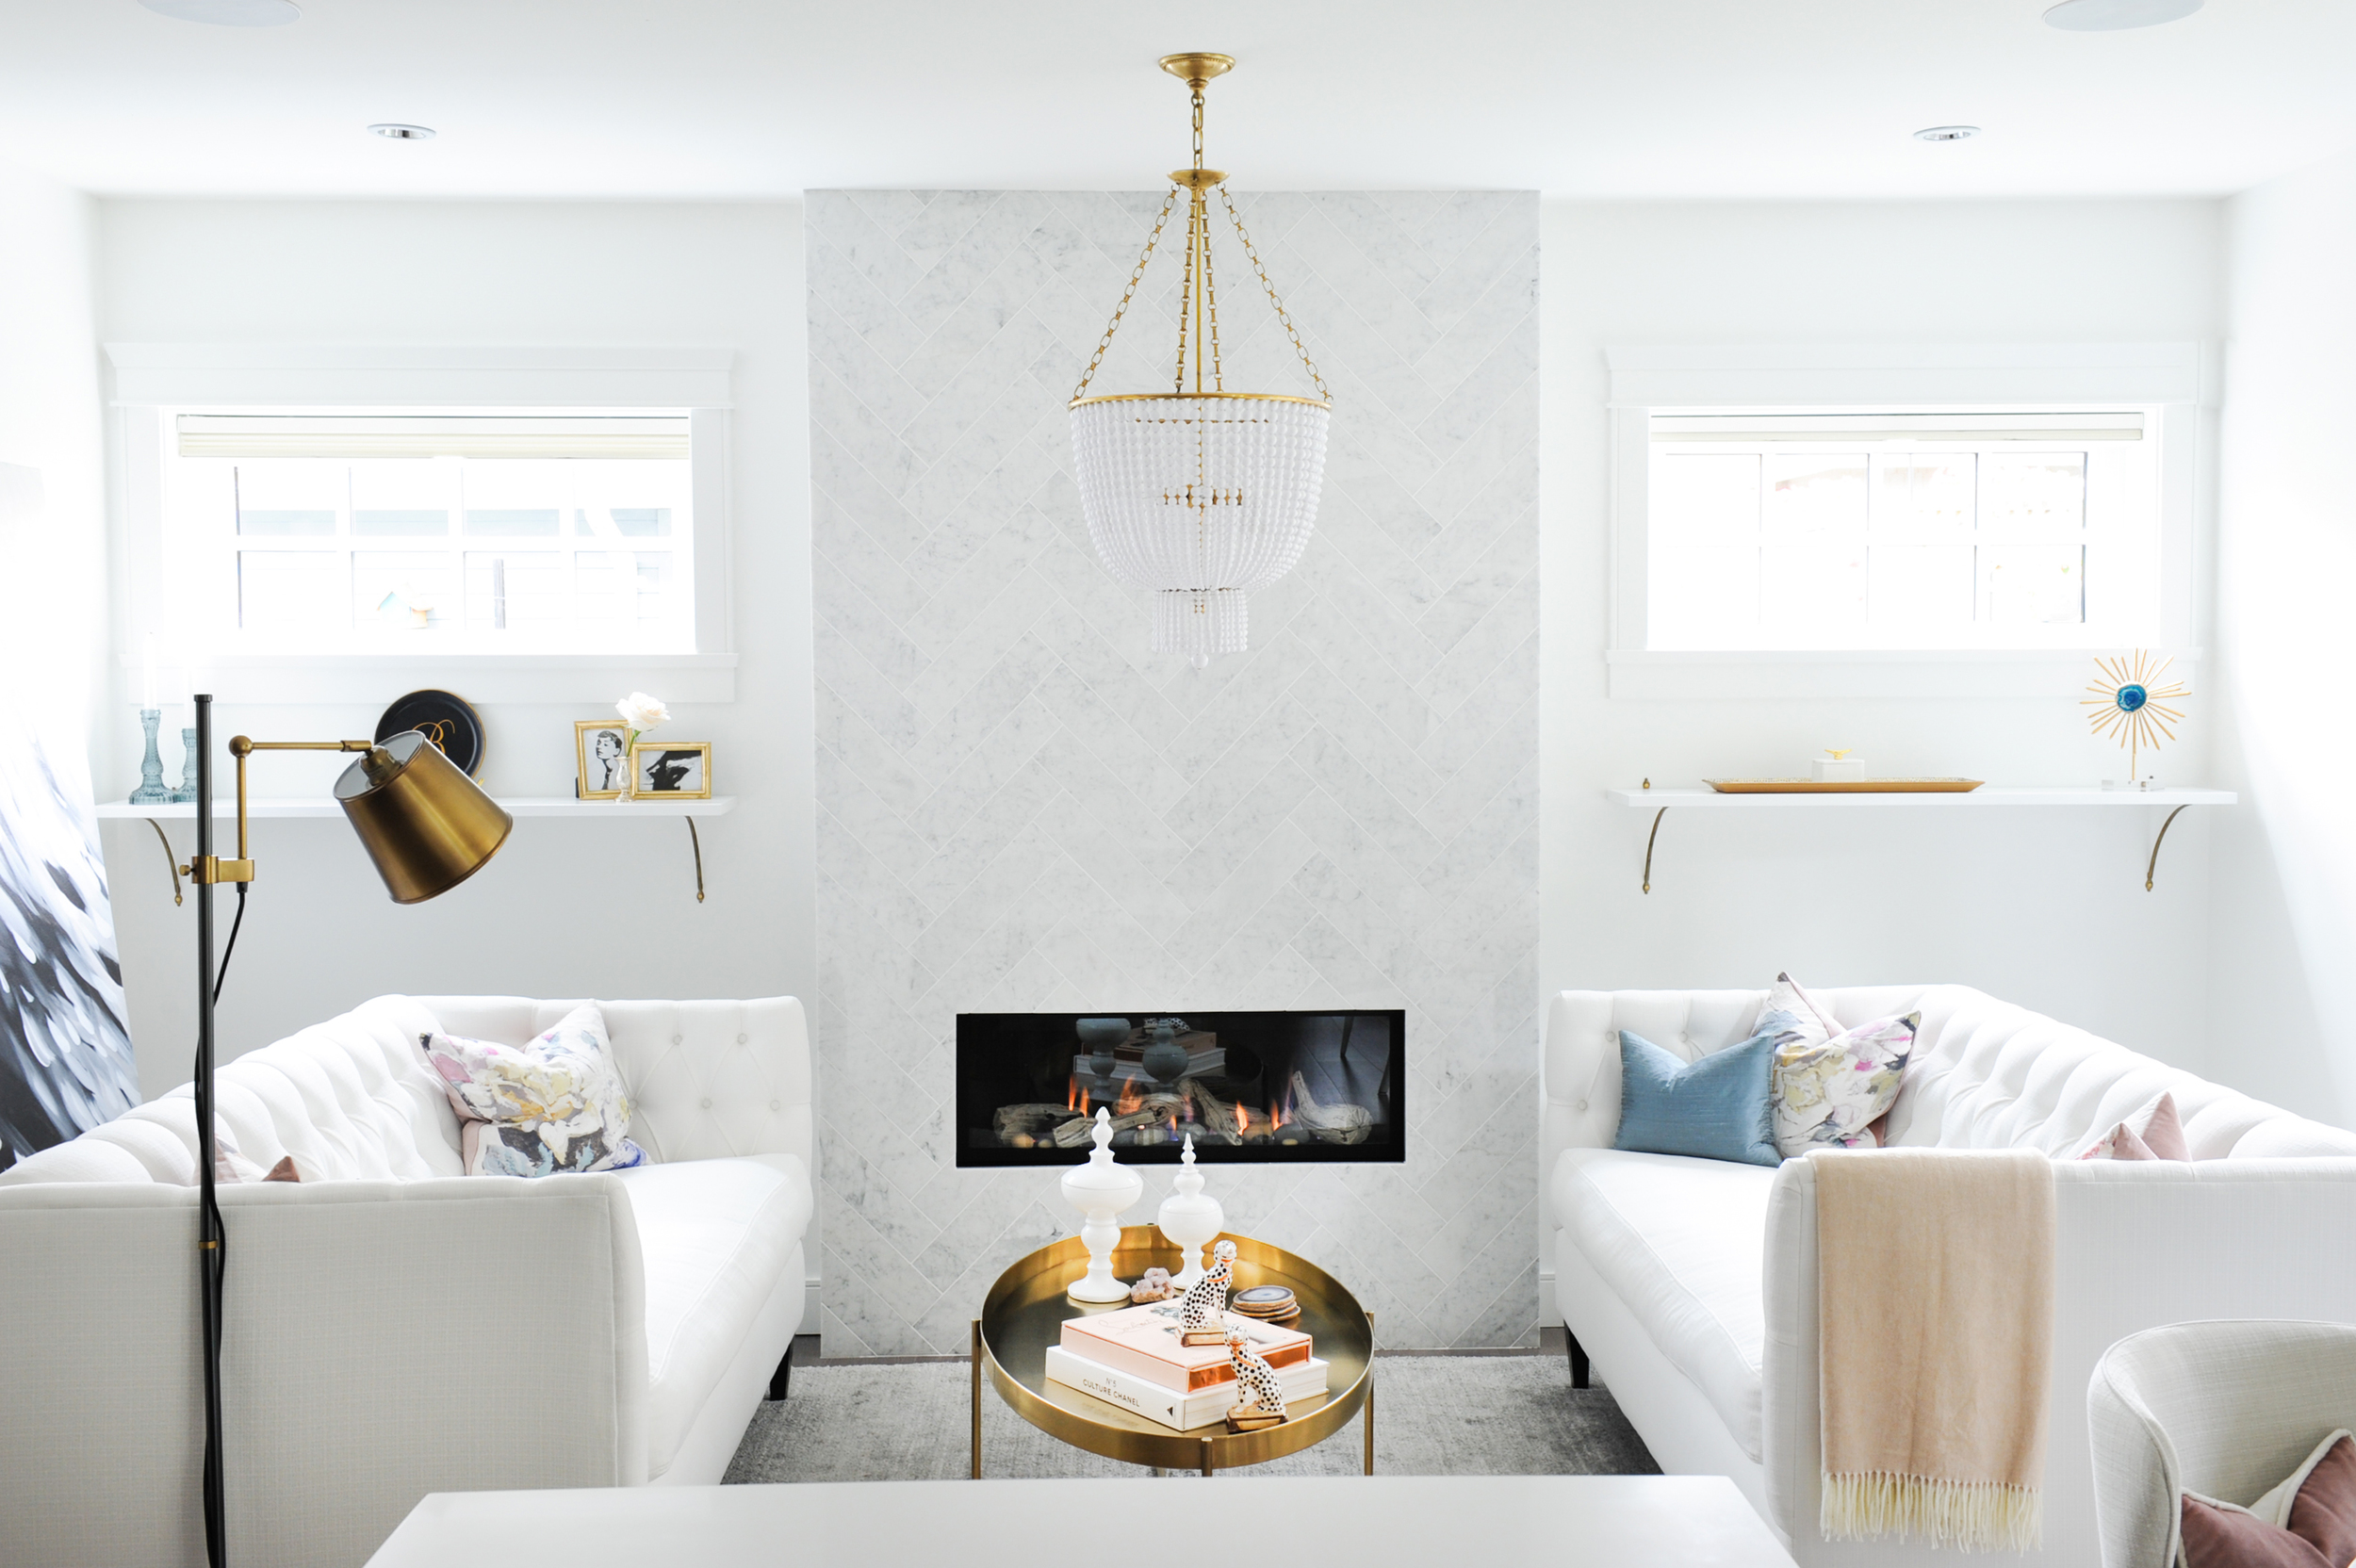 Twin tufted sofas, a chic chandelier and a beautiful marble herringbone fireplace.